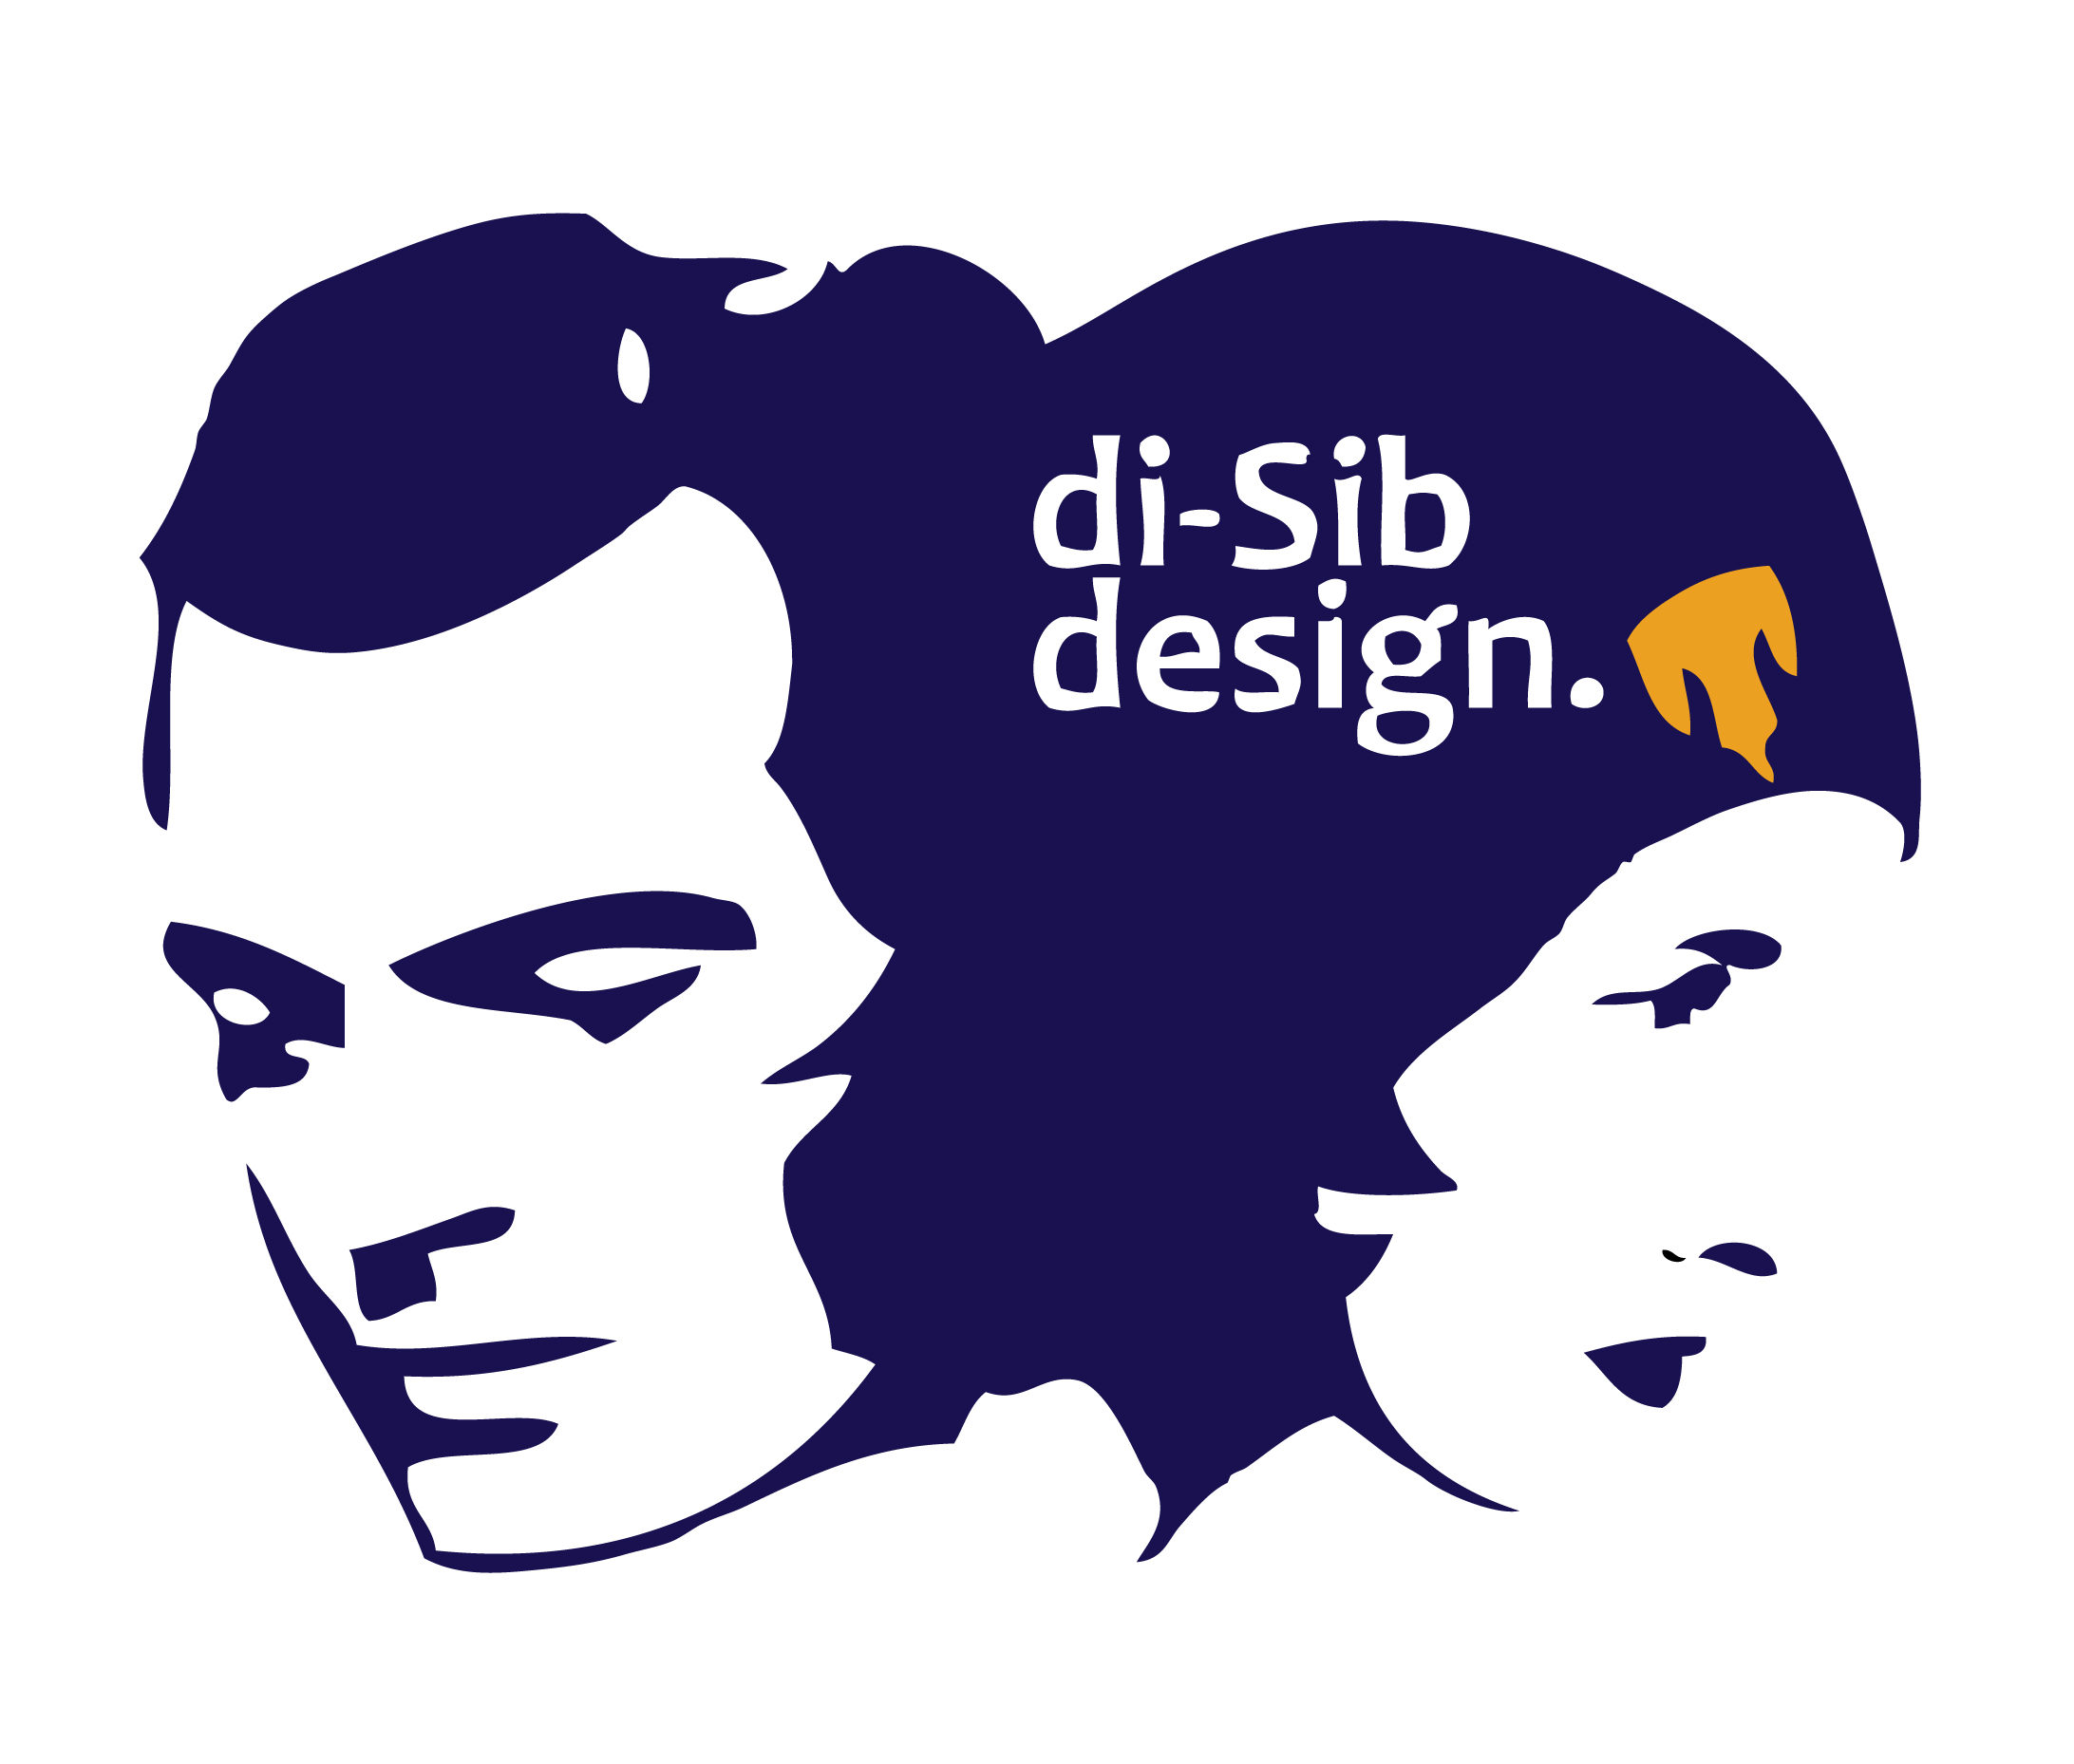 DI-SIB DESIGN • LOGO  CLIENT: DI-SIB DESIGN CO. (TWO-SIBLING DESIGN) BRIEF: Put our heads together. WORK: Adobe Illustrator